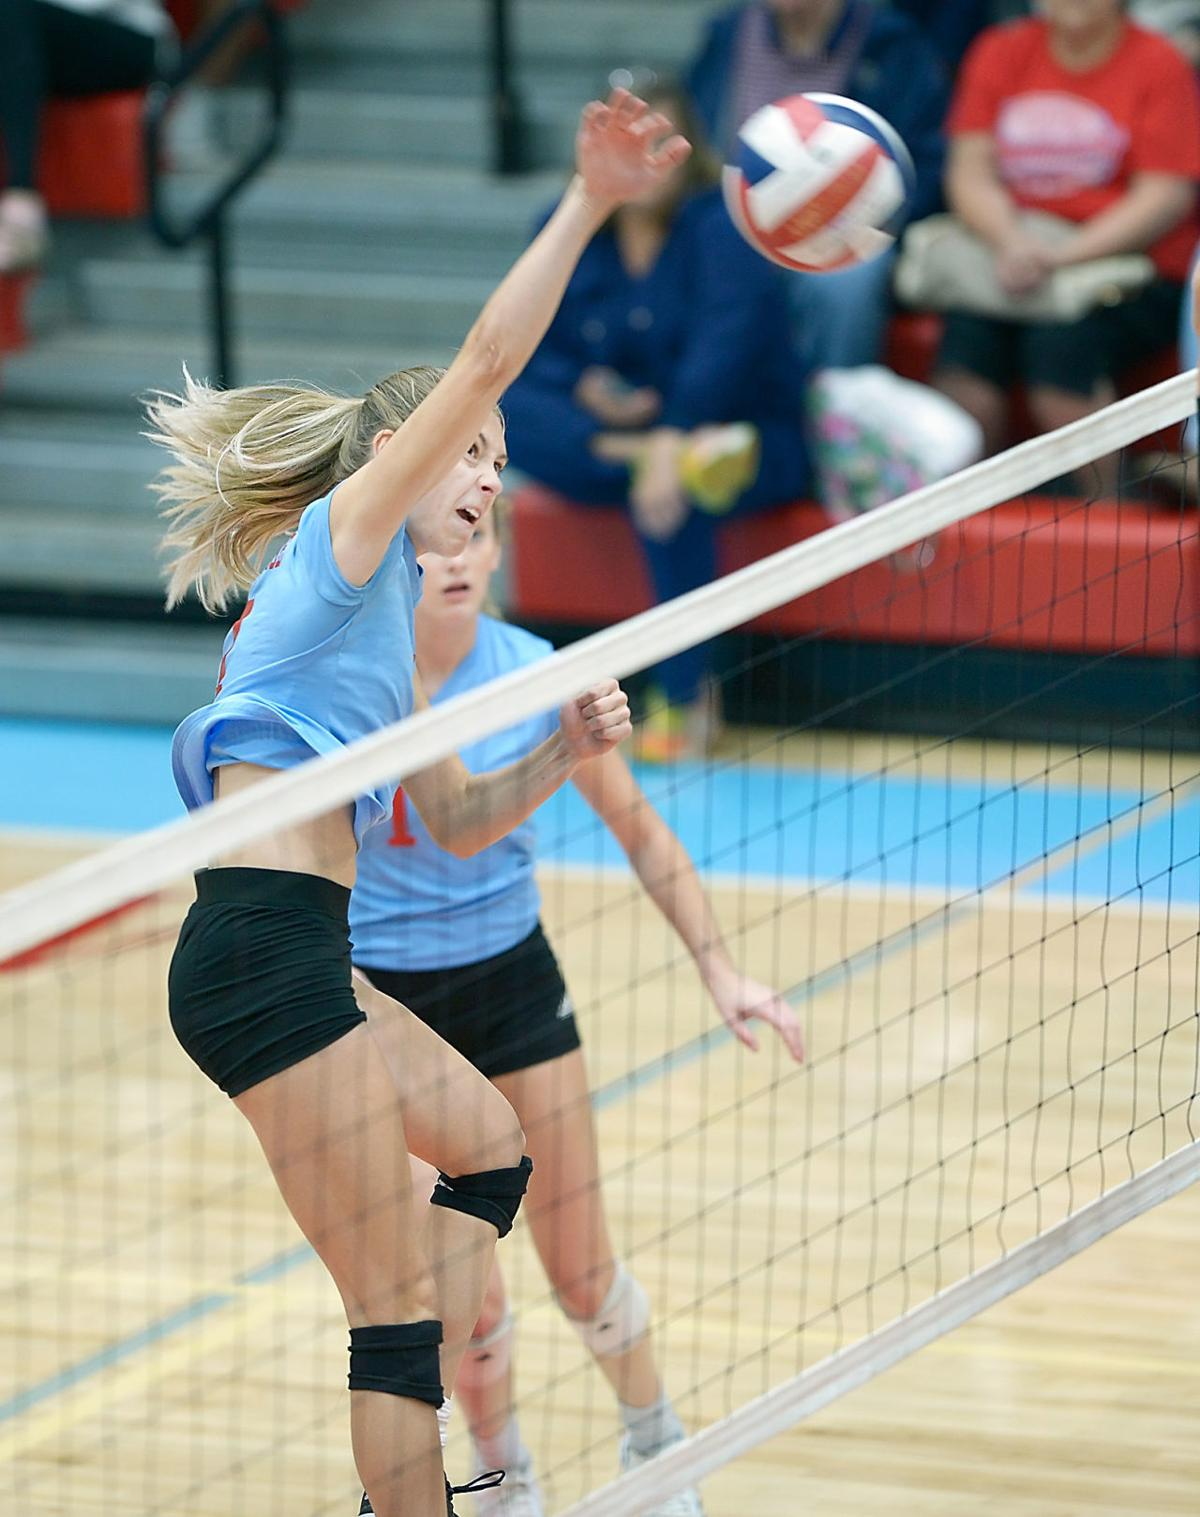 VOLLEYBALL: Heritage's Anna Richardson vs Morristown East